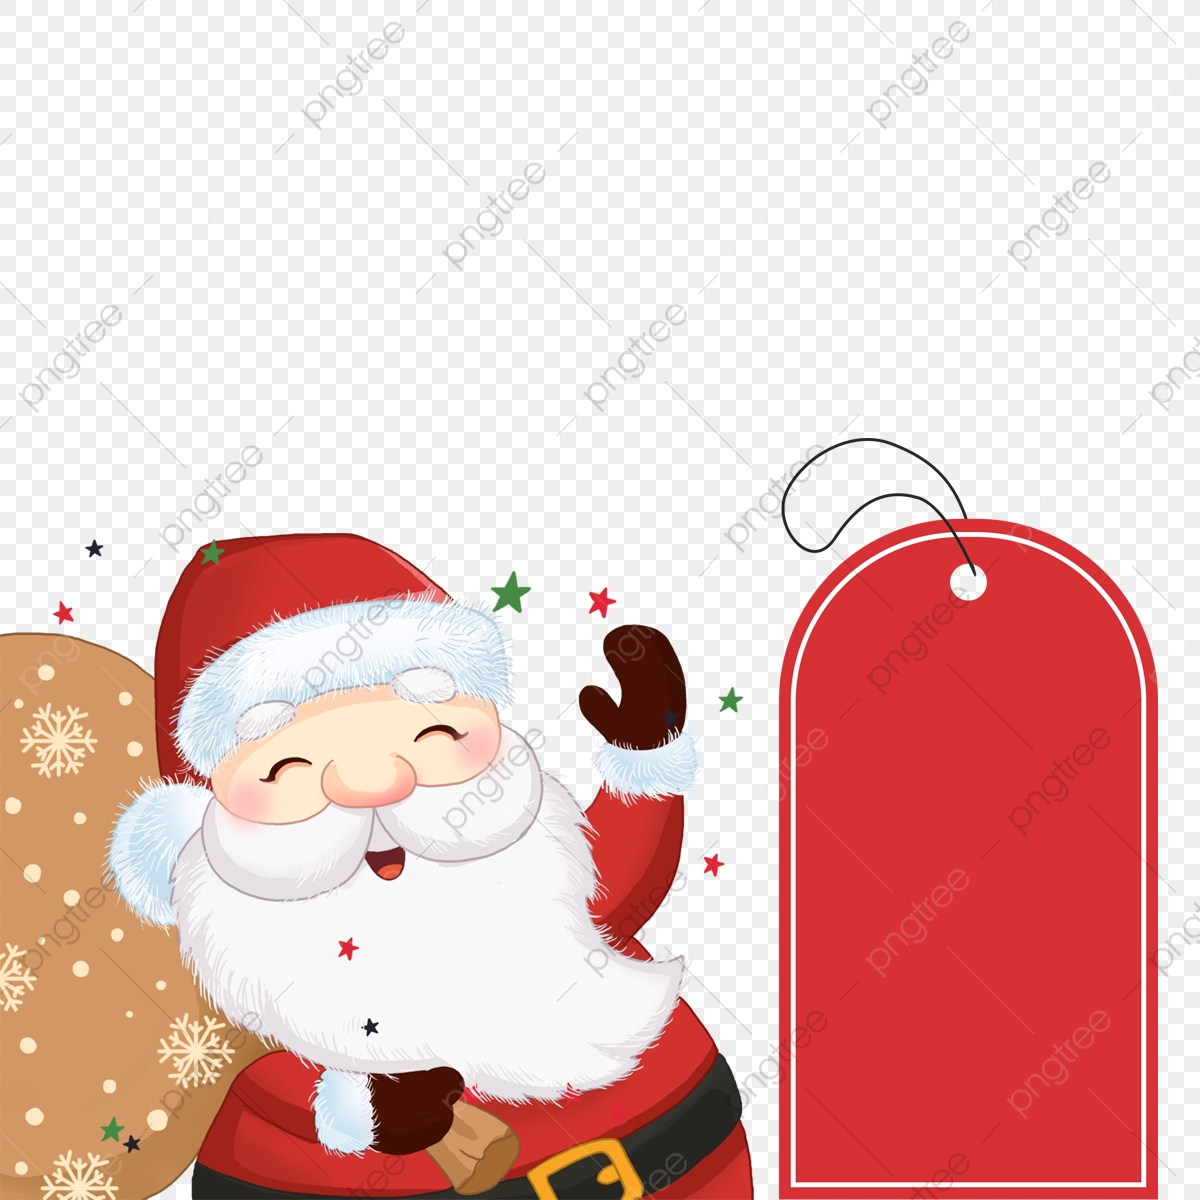 Old Man Carrying Gift Bag With Christmas Label Lovely Christmas Label Png Transparent Clipart Image And Psd File For Free Download